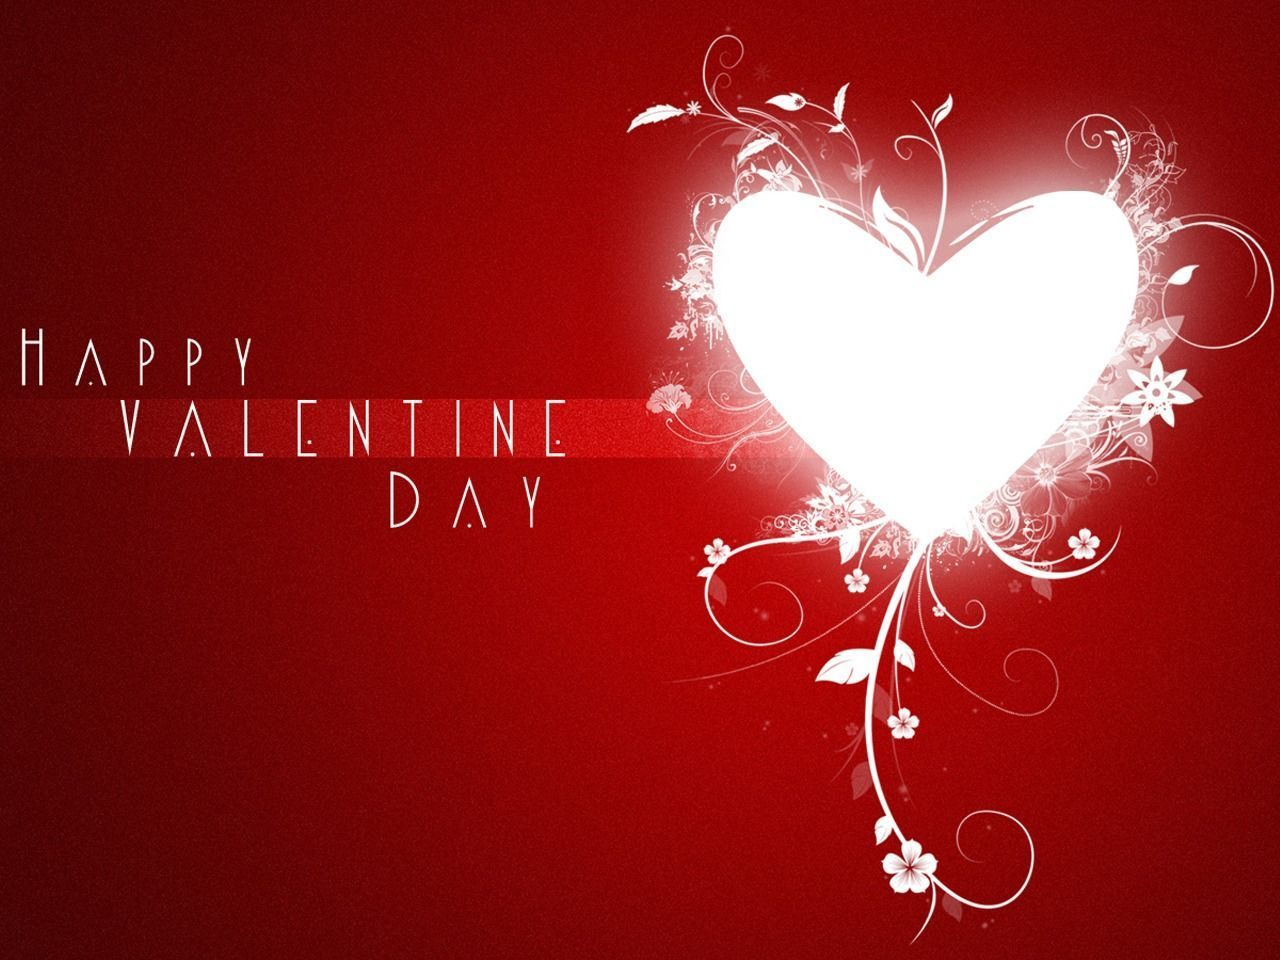 #101 #Valentine #Ideas  Image by Google Search